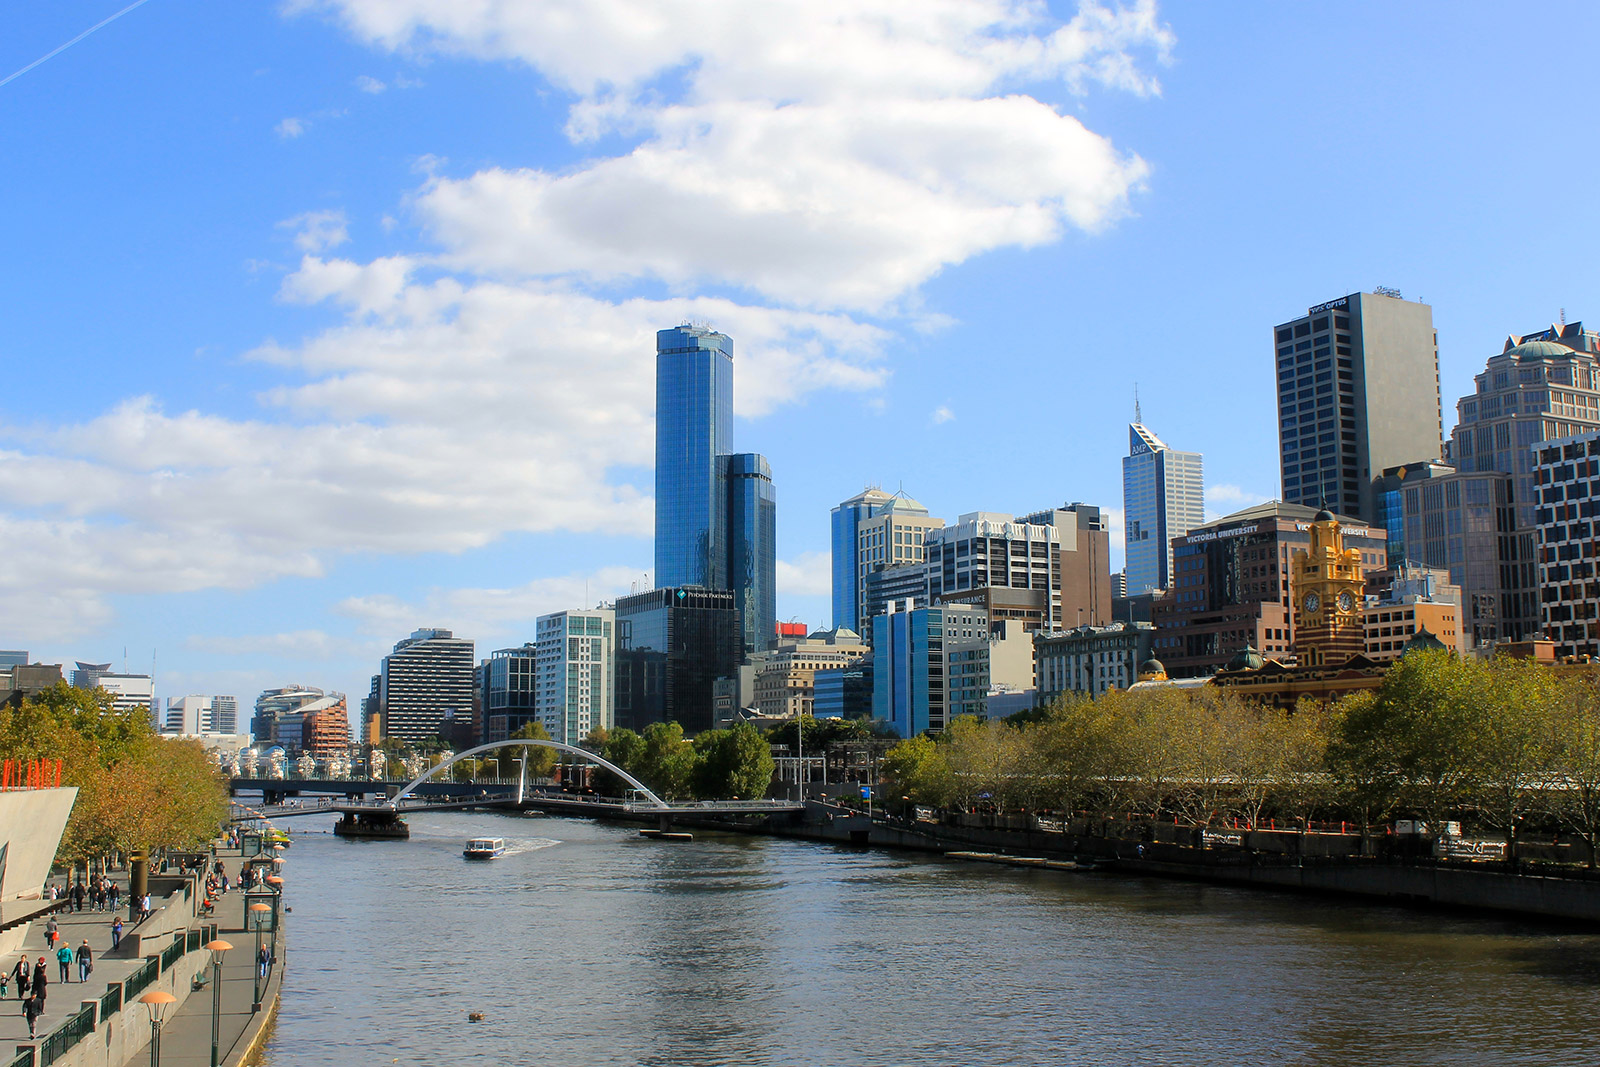 Melbourne cityscape. Photo by Victoria MIta